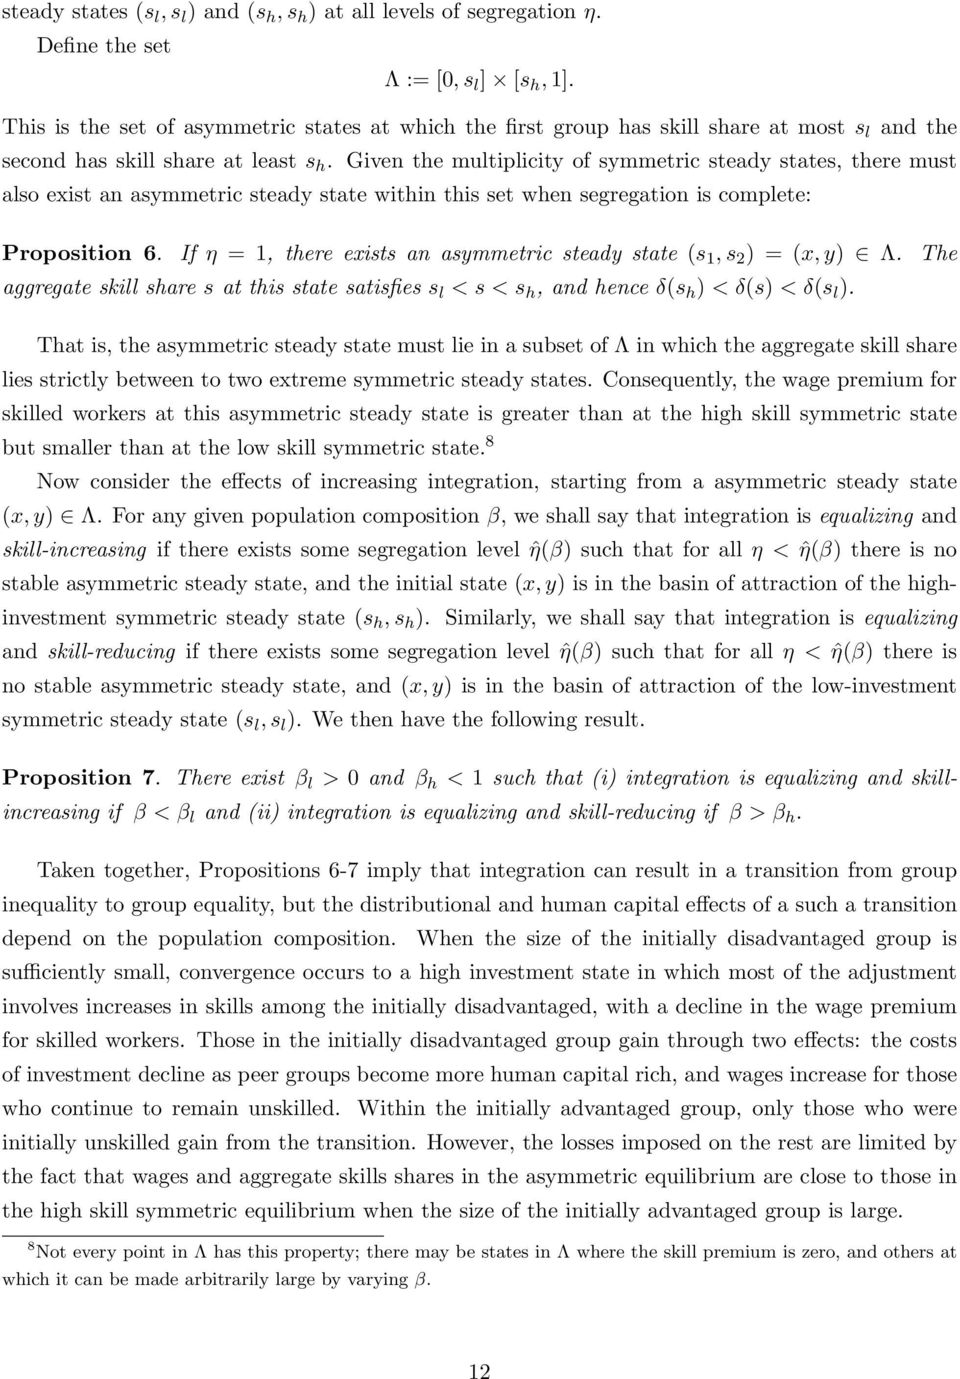 Given the multiplicity of symmetric steady states, there must also exist an asymmetric steady state within this set when segregation is complete: Proposition 6.